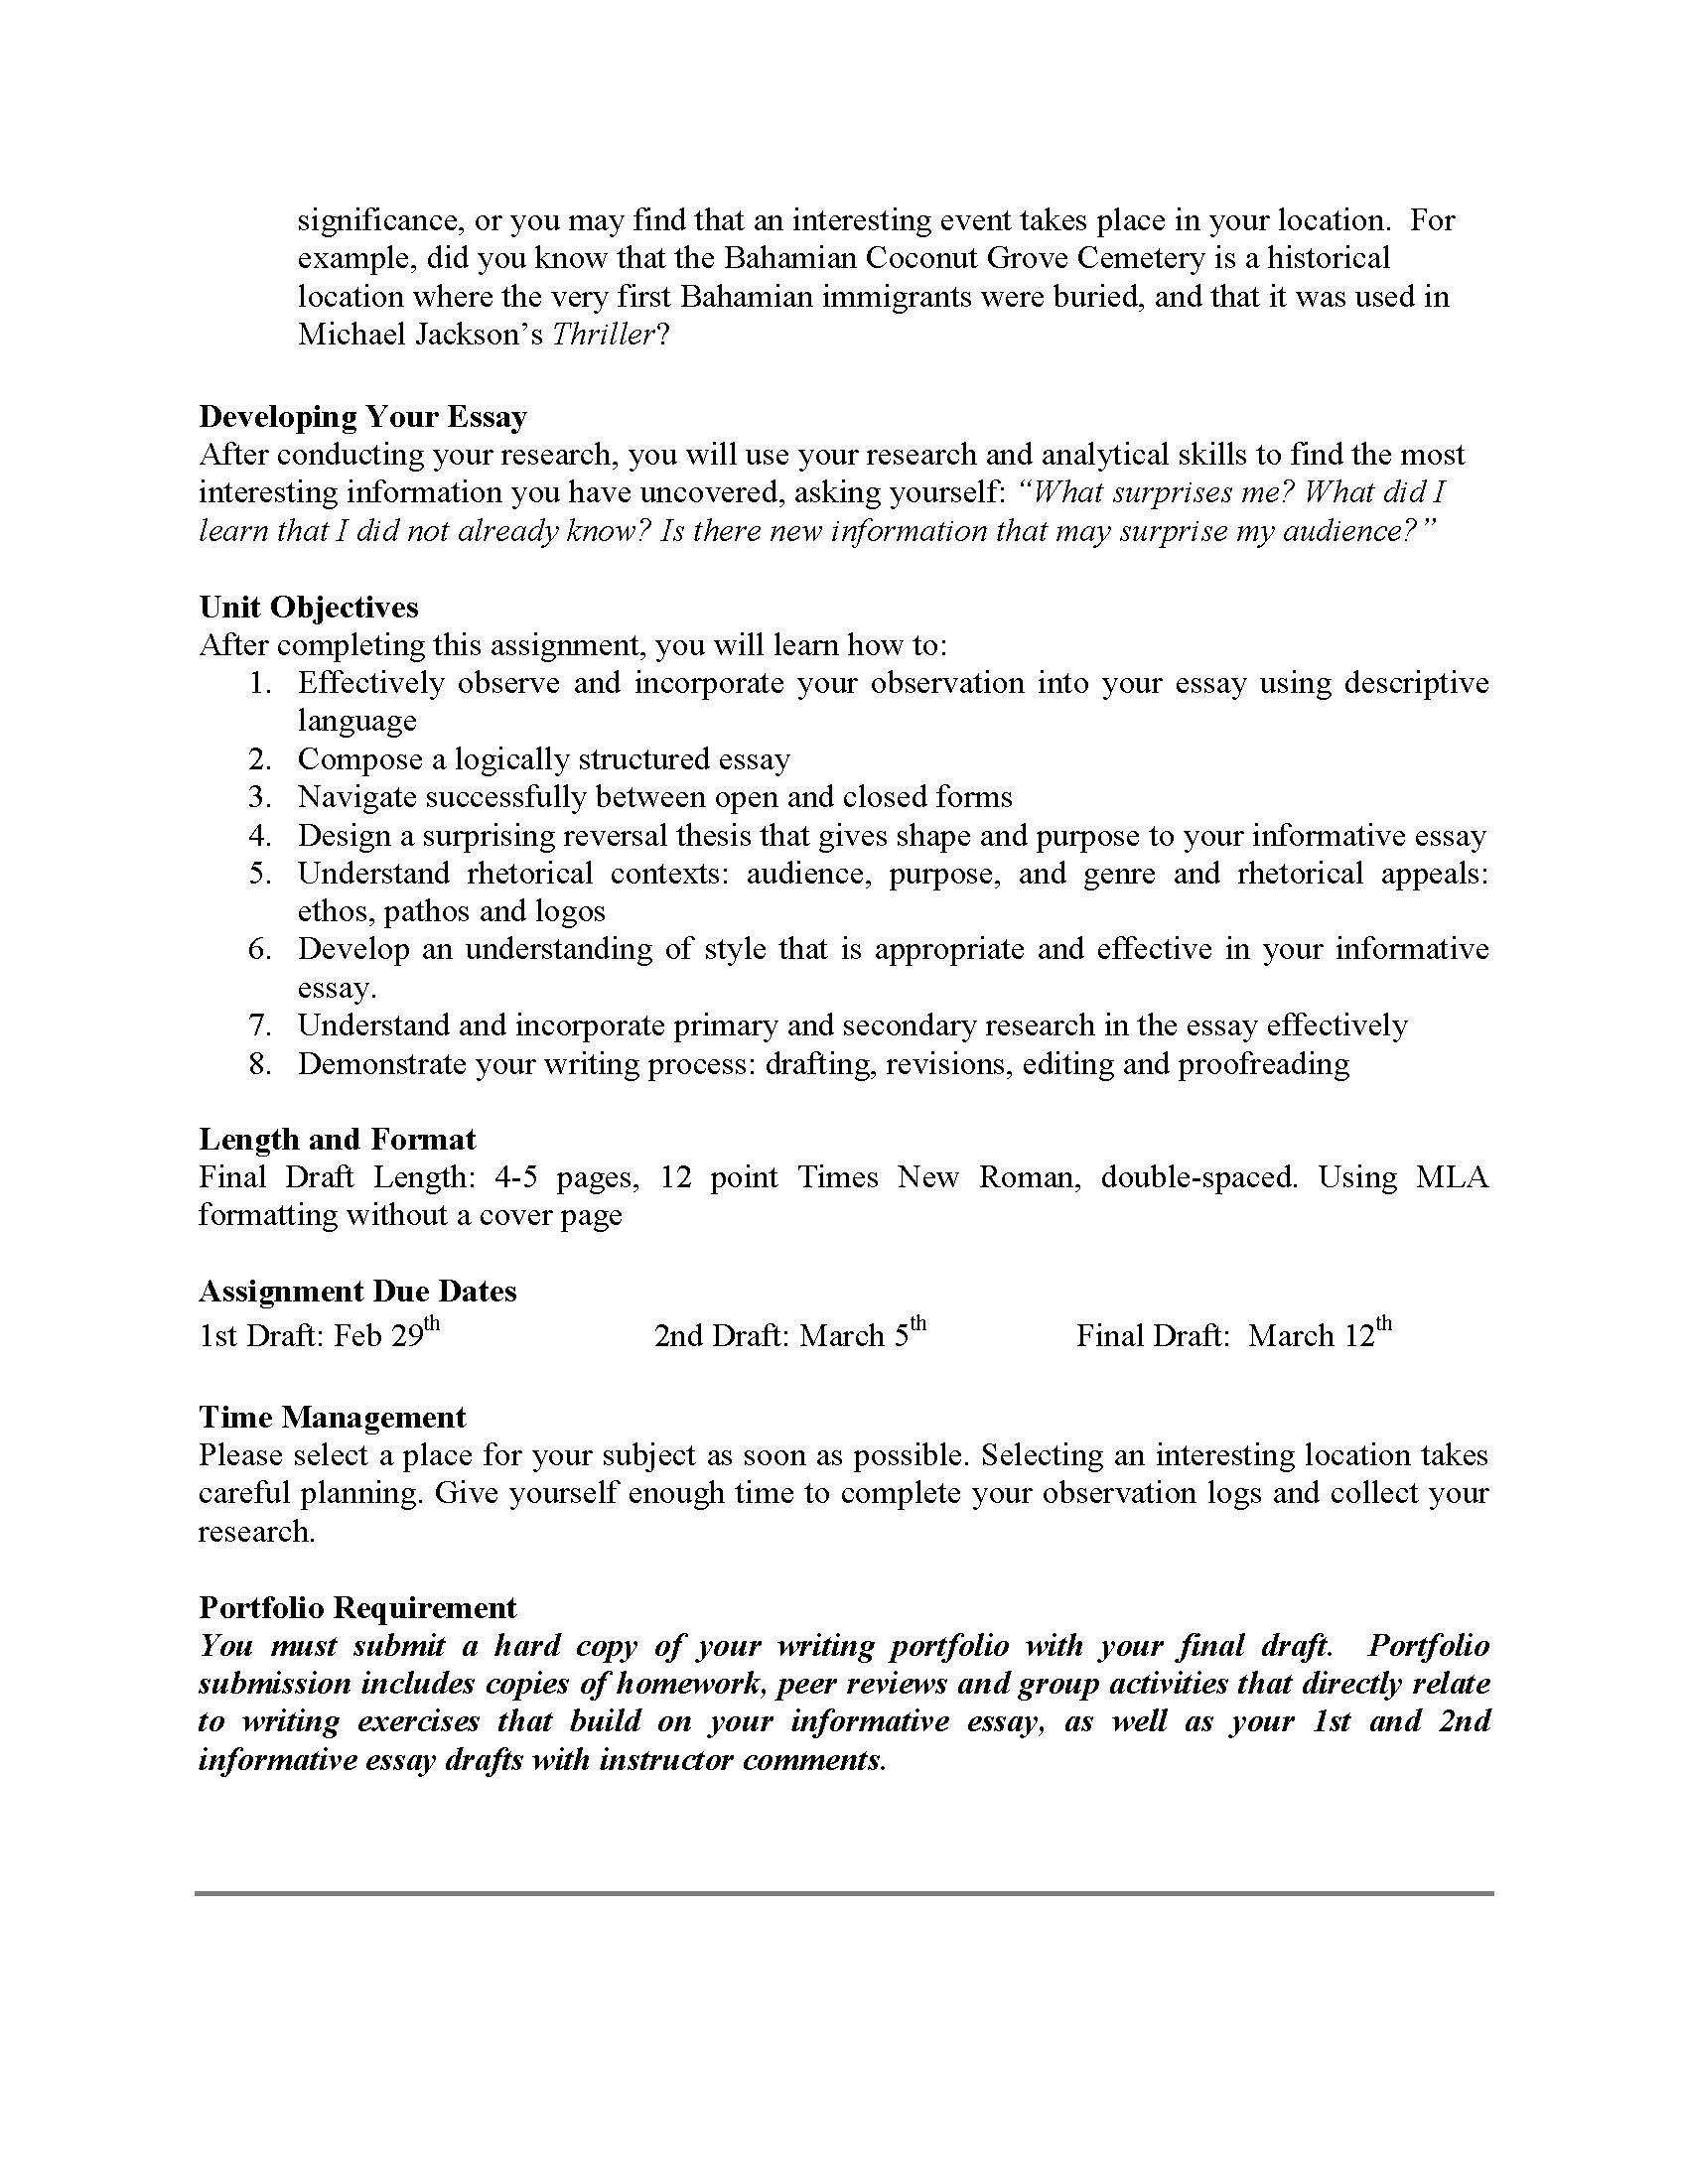 014 Informative Essay Unit Assignment Page 2 Dreaded Graphic Organizer Middle School Rubric 6th Grade Topics Full